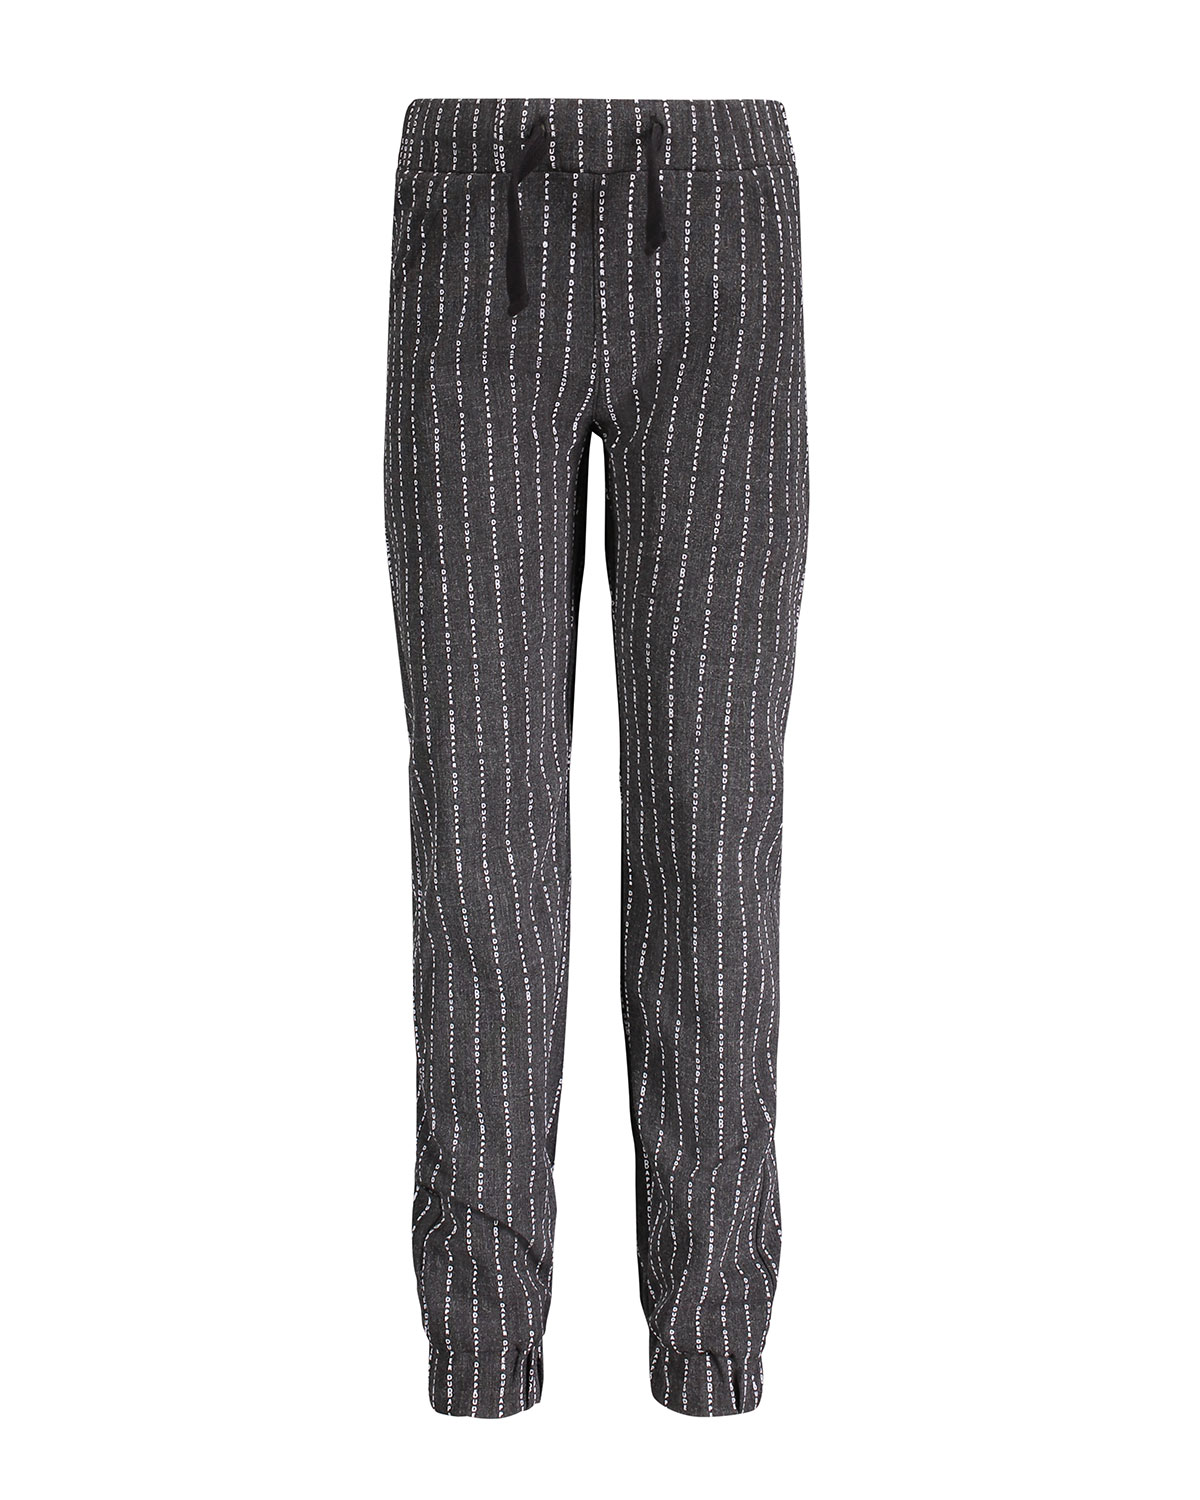 ANDY & EVAN Letter Striped Jogger Pants, Size 2-7 in Gray